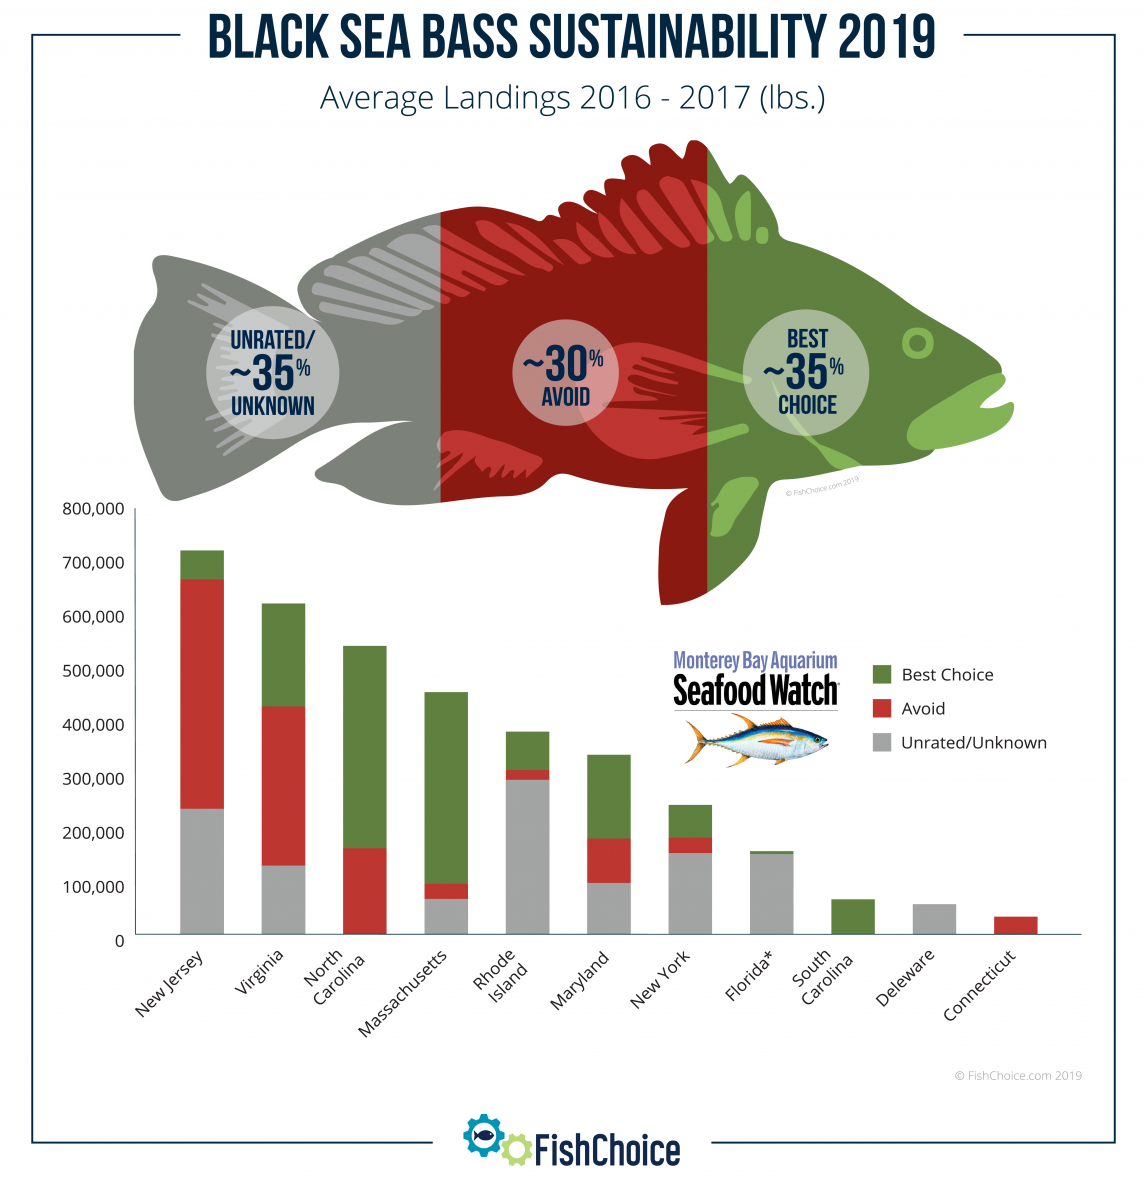 Black Sea Bass Sustainability